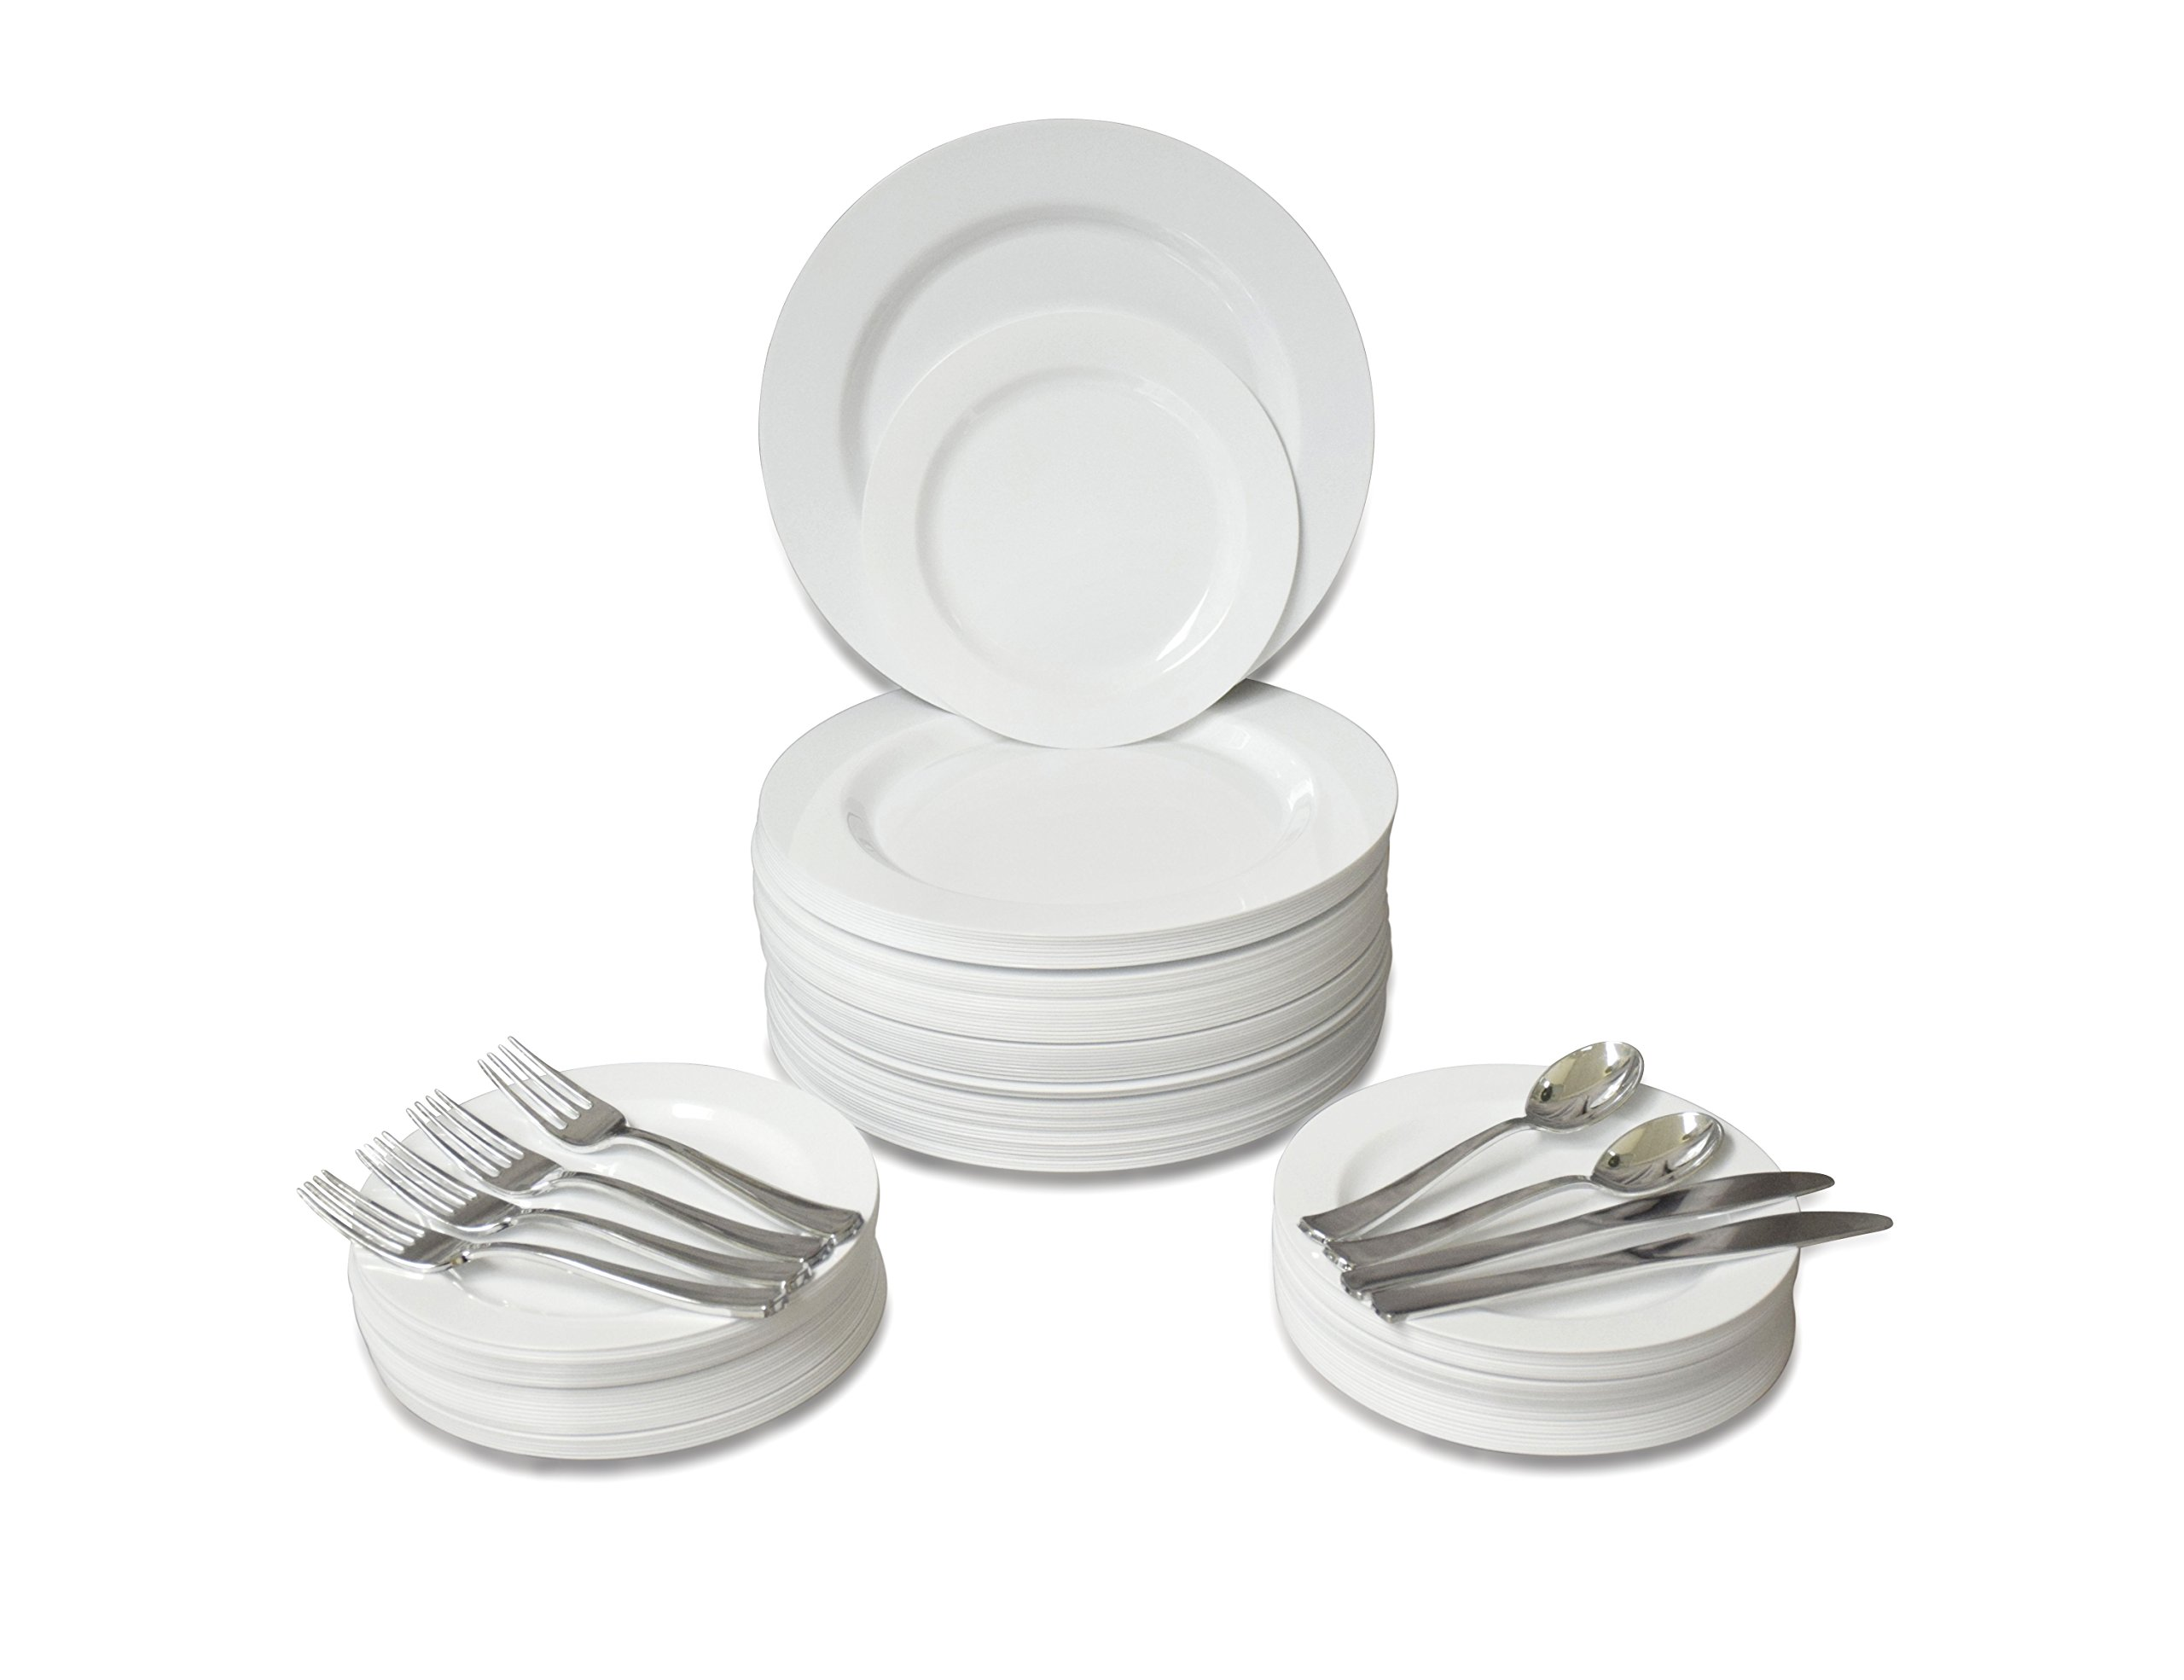 '' OCCASIONS '' 720 PCS / 120 GUEST Wedding Disposable Plastic Plate and Silverware Combo Set , ( Plain White plates, Silver silverware )